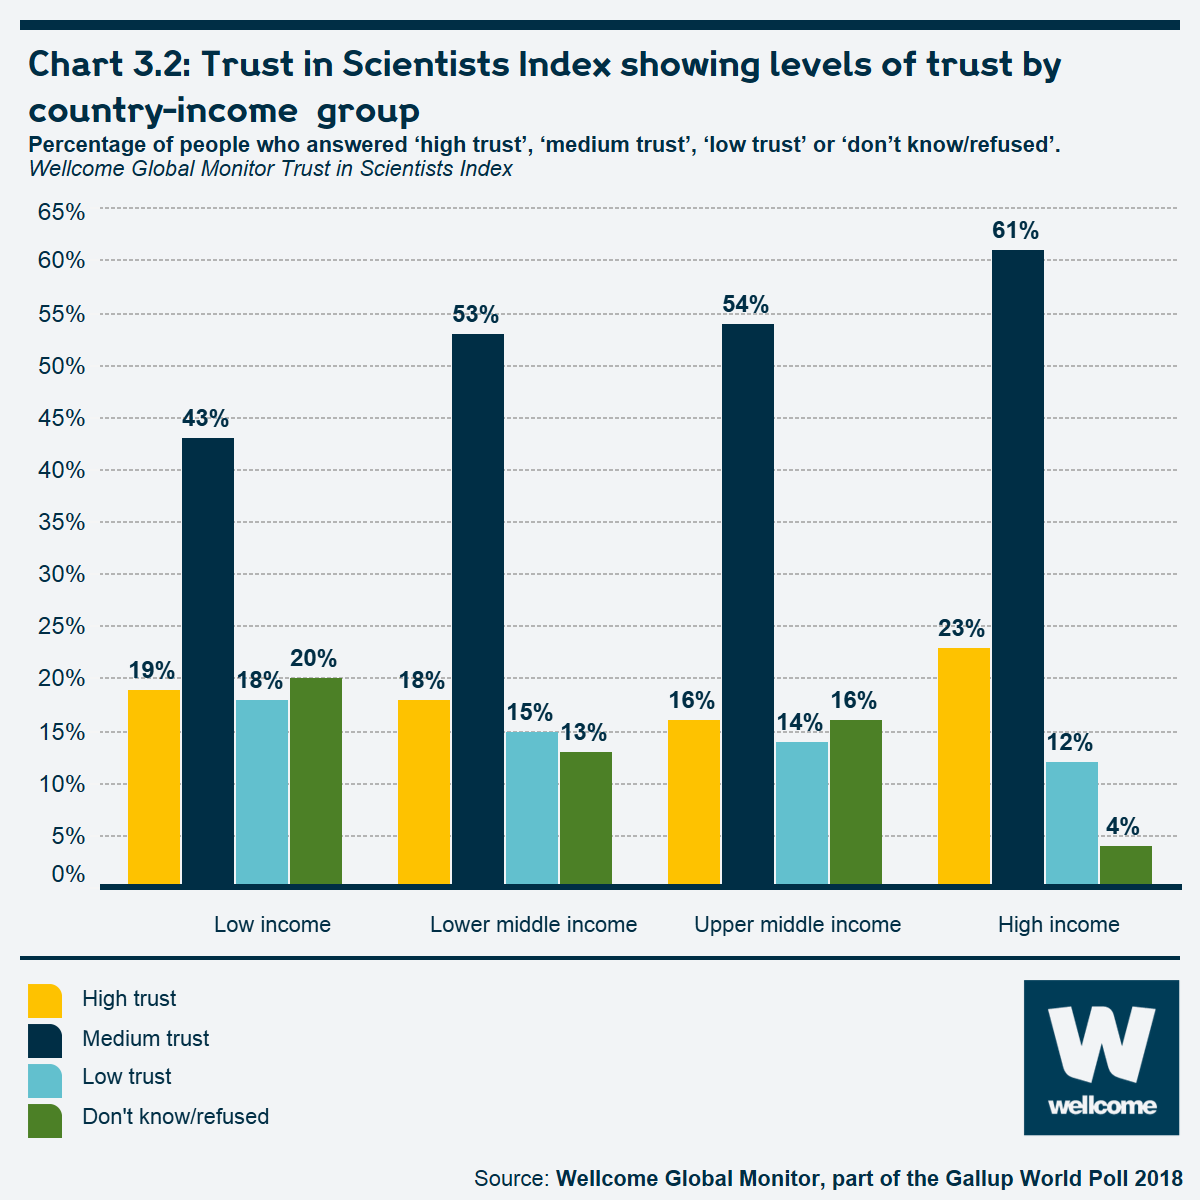 Chart 3.2 Trust in Scientists Index showing levels of trust by country-income group